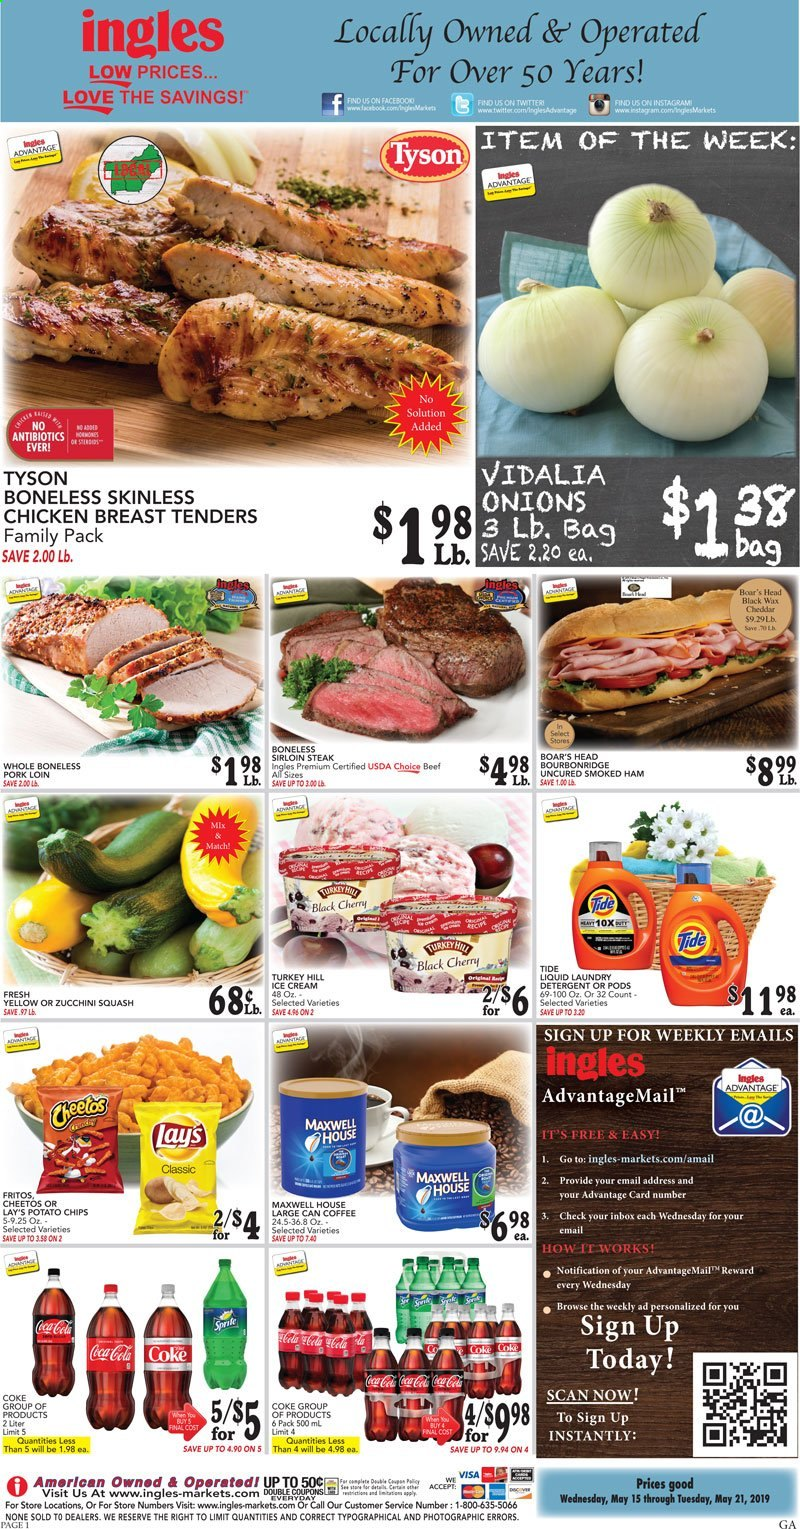 Ingles Flyer - 05.15.2019 - 05.21.2019 - Sales products - squash, zucchini, onion, ham, smoked ham, ice cream, potato chips, Cheetos, chips, Lay's, Fritos, Coca-Cola, coffee, Maxwell House, turkey, chicken, chicken breast, steak, pork loin, pork meat, detergent, Tide, laundry detergent. Page 1.